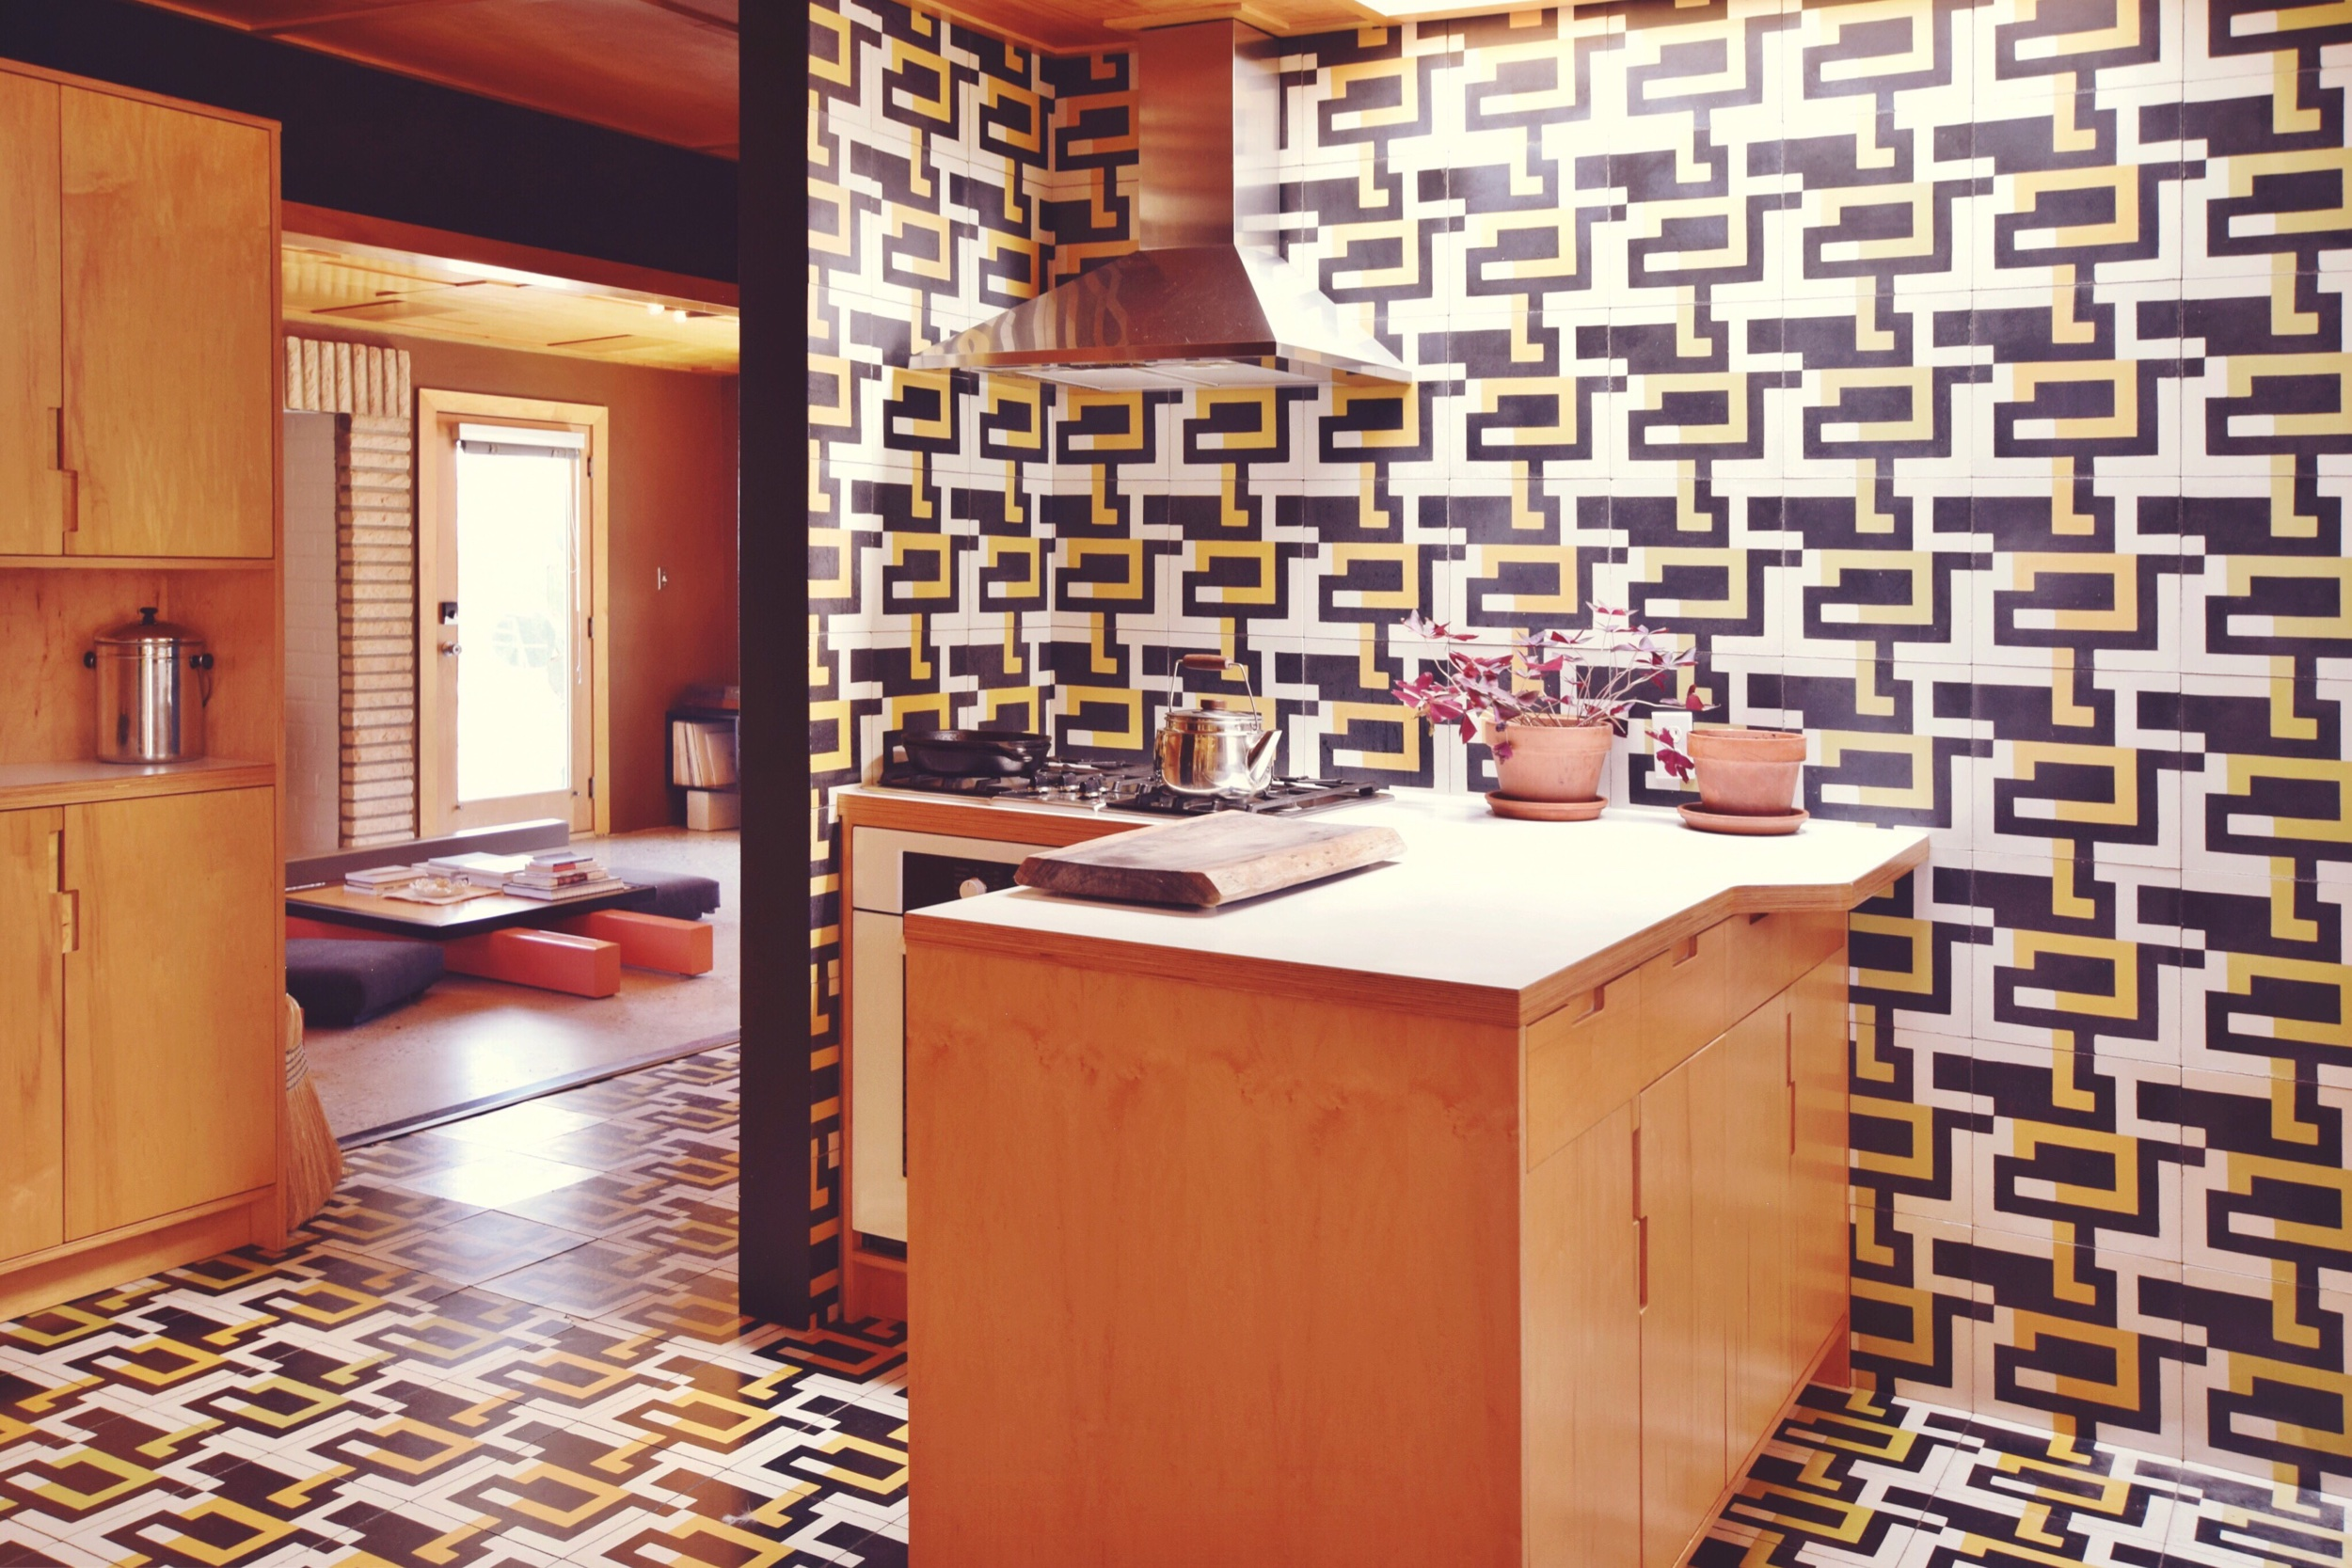 The kaleidoscopic kitchen featuring Andrea's custom tiles and work benches. A reluctant diner, Andrea lived without a stove for many years, cooking instead together with her guests on a communal hot plate similar to a Korean BBQ.